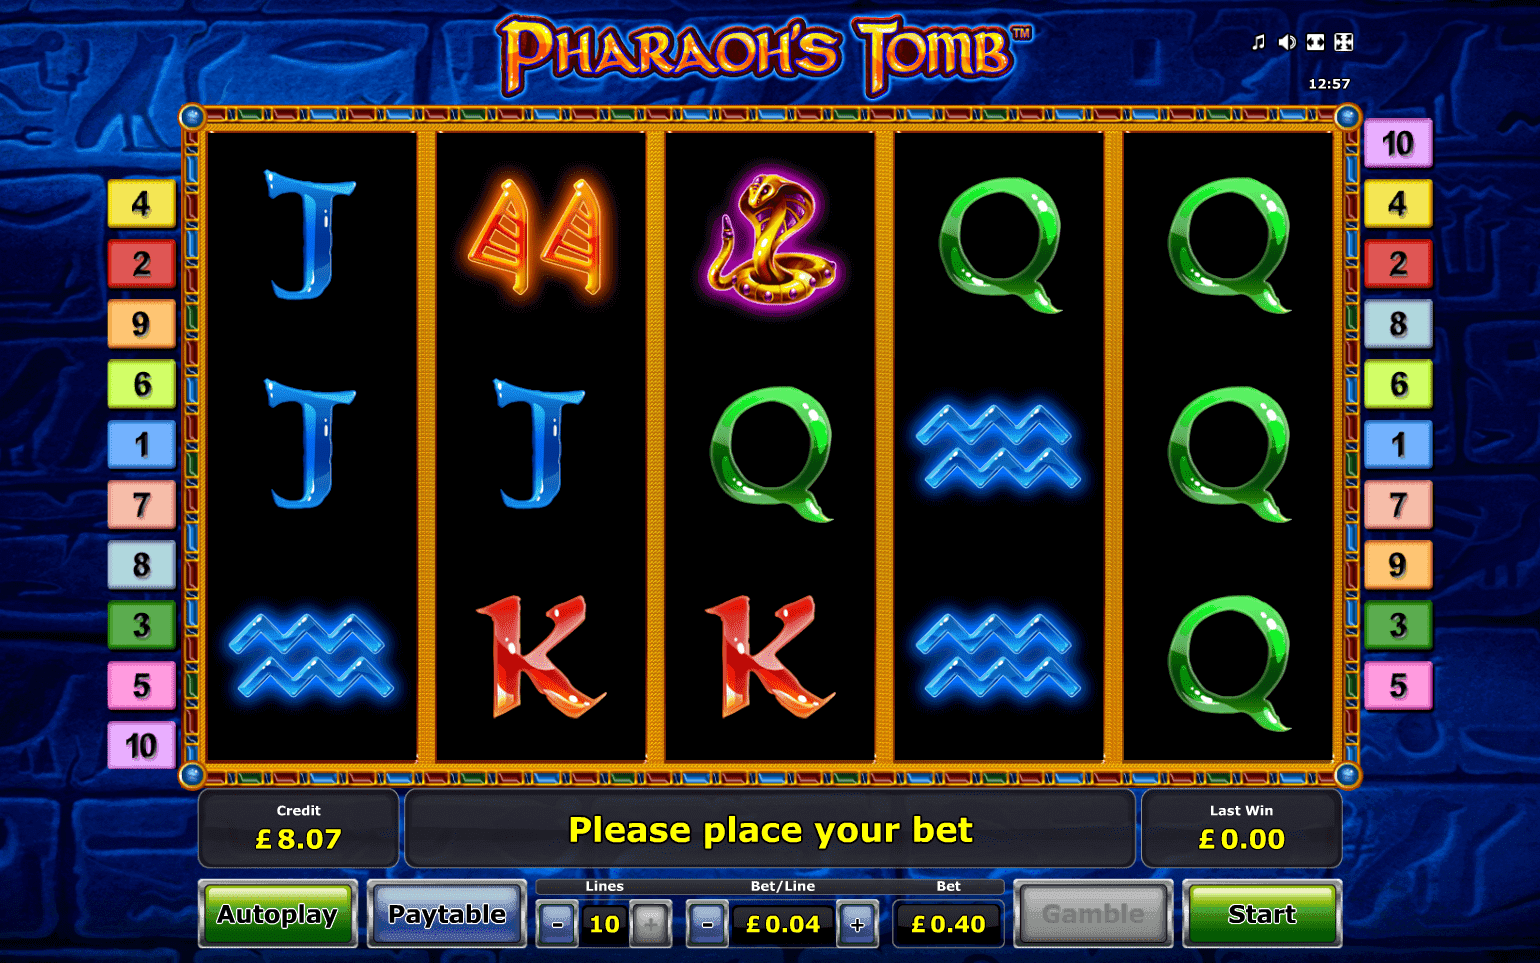 Pharaohs Tomb Slot Machine - Play for Free Online Today